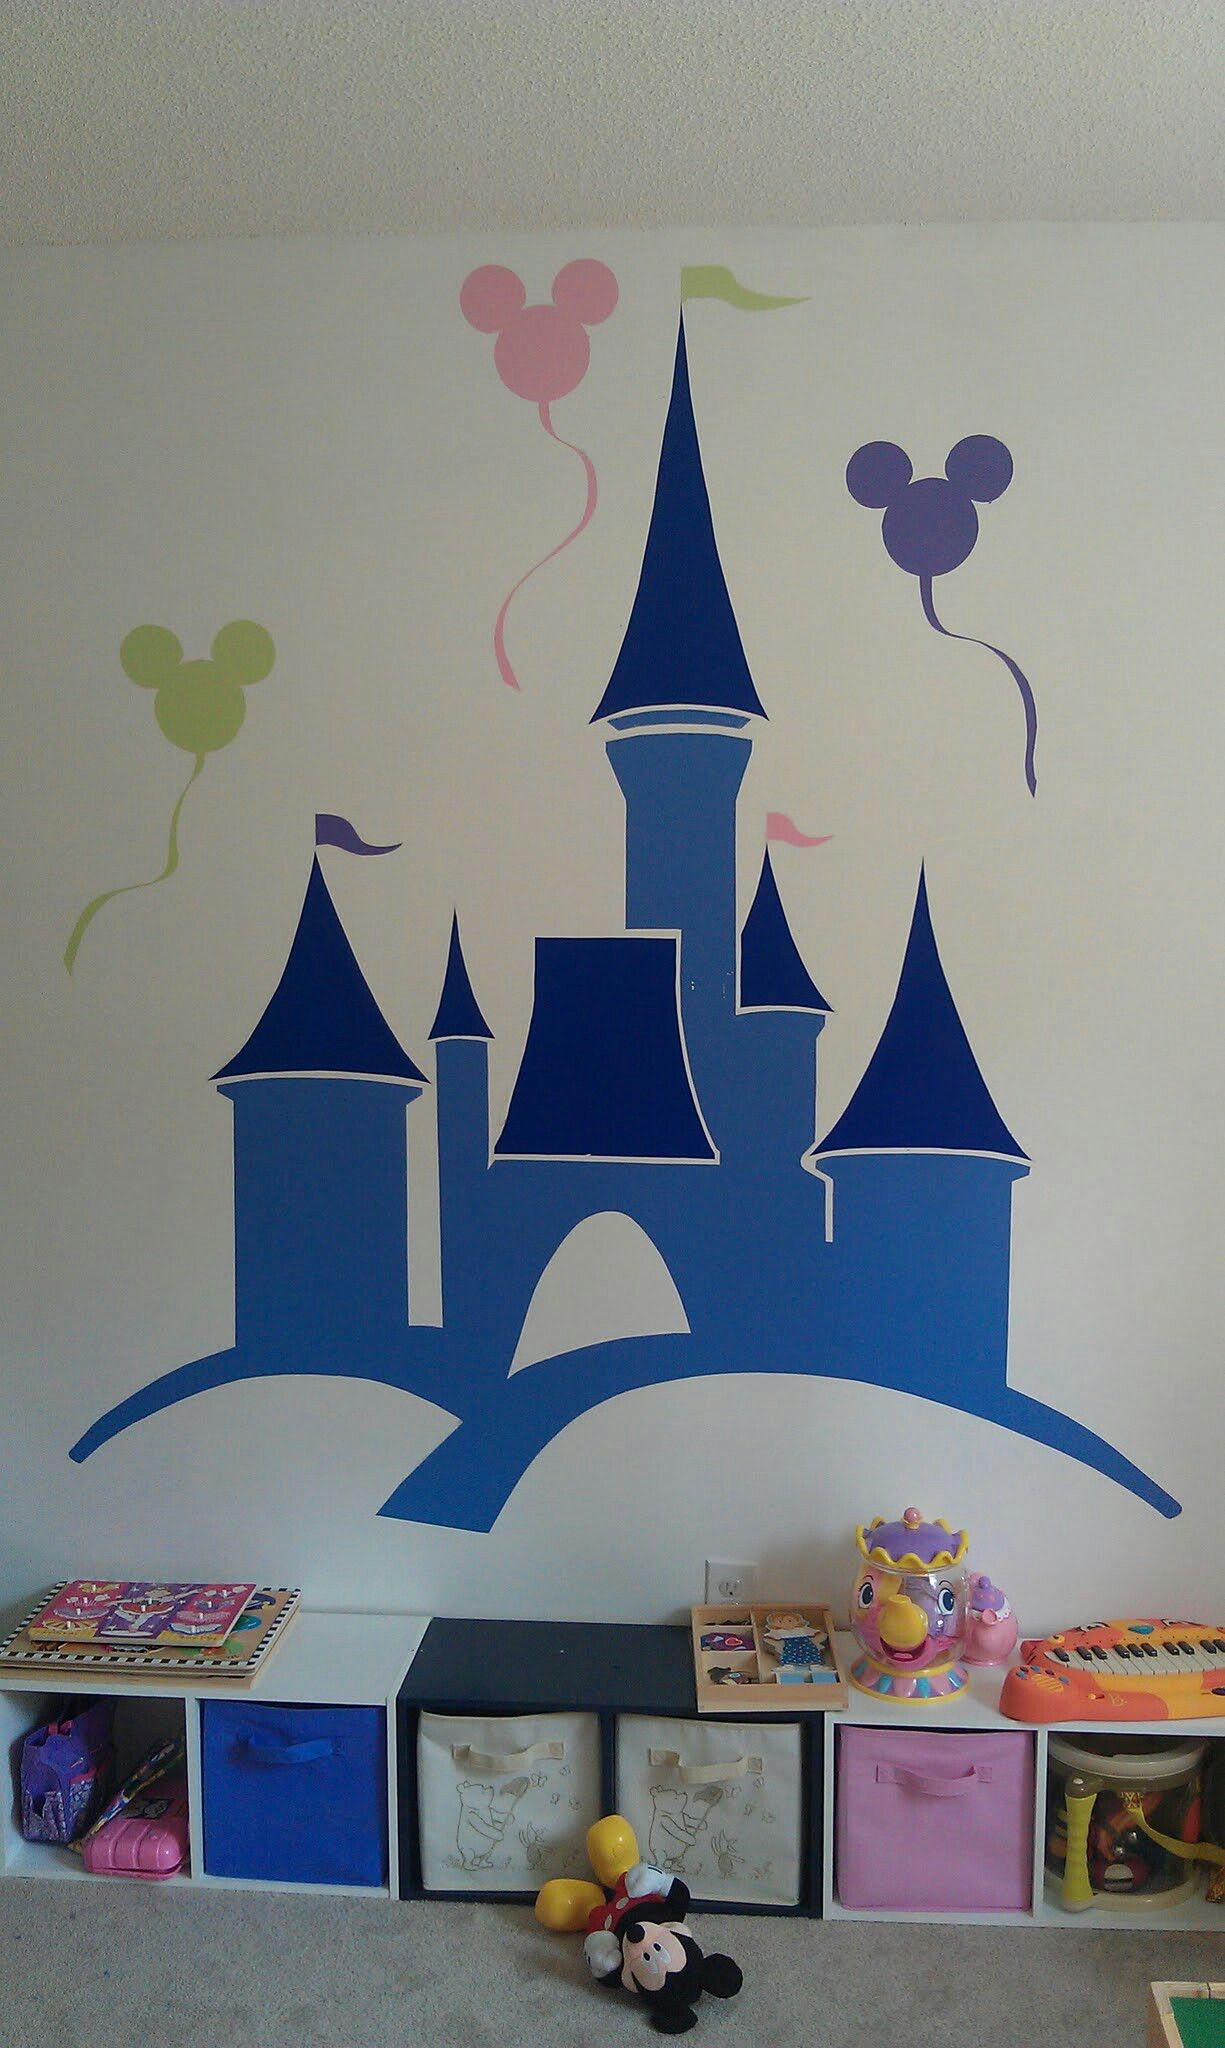 Playroom Mural For Our Little Princess   Playroom Mural